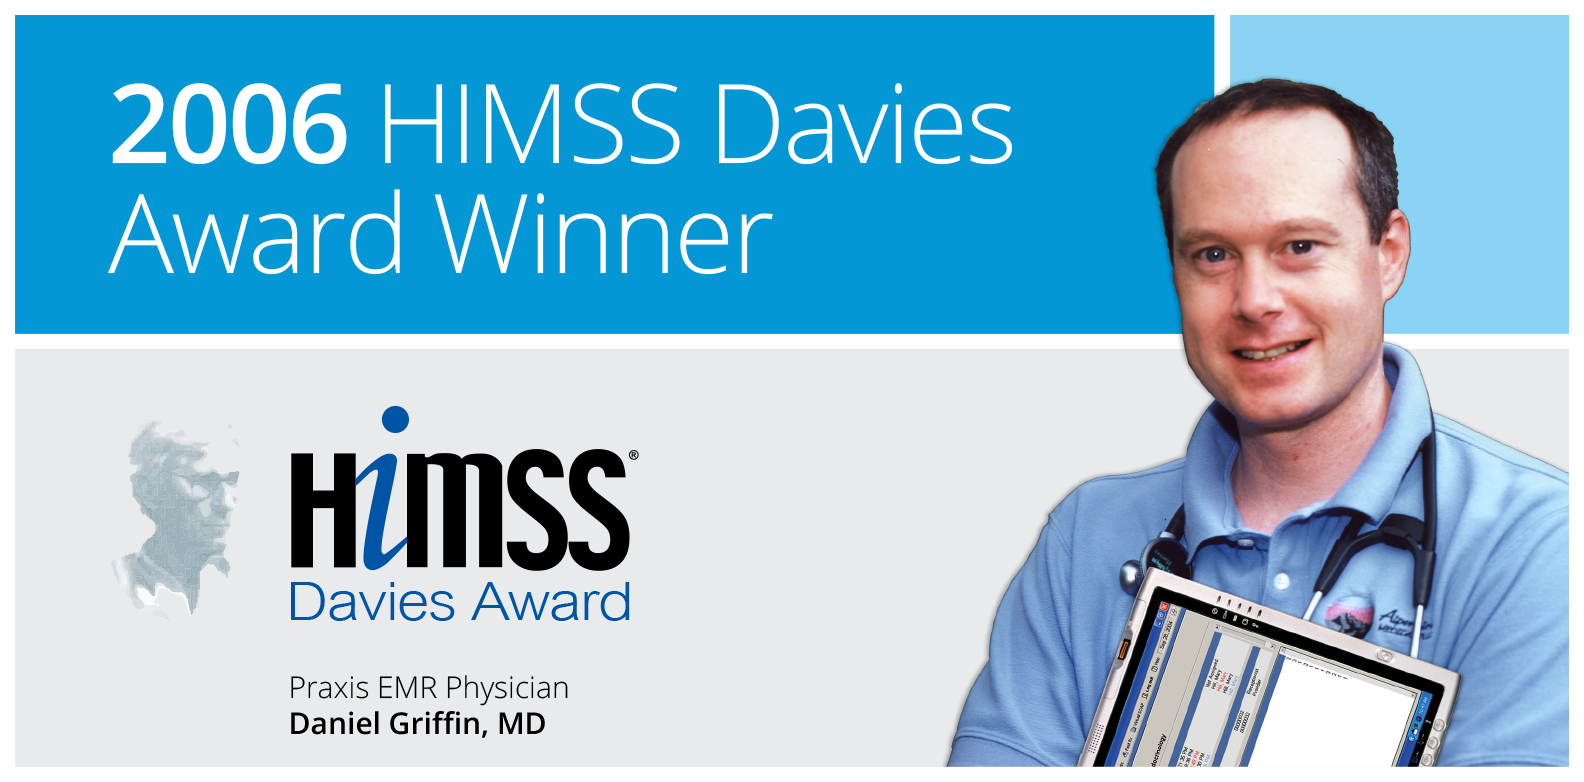 Himss Davies Award 2006 - Praxis EMR user Daniel Griffin, MD